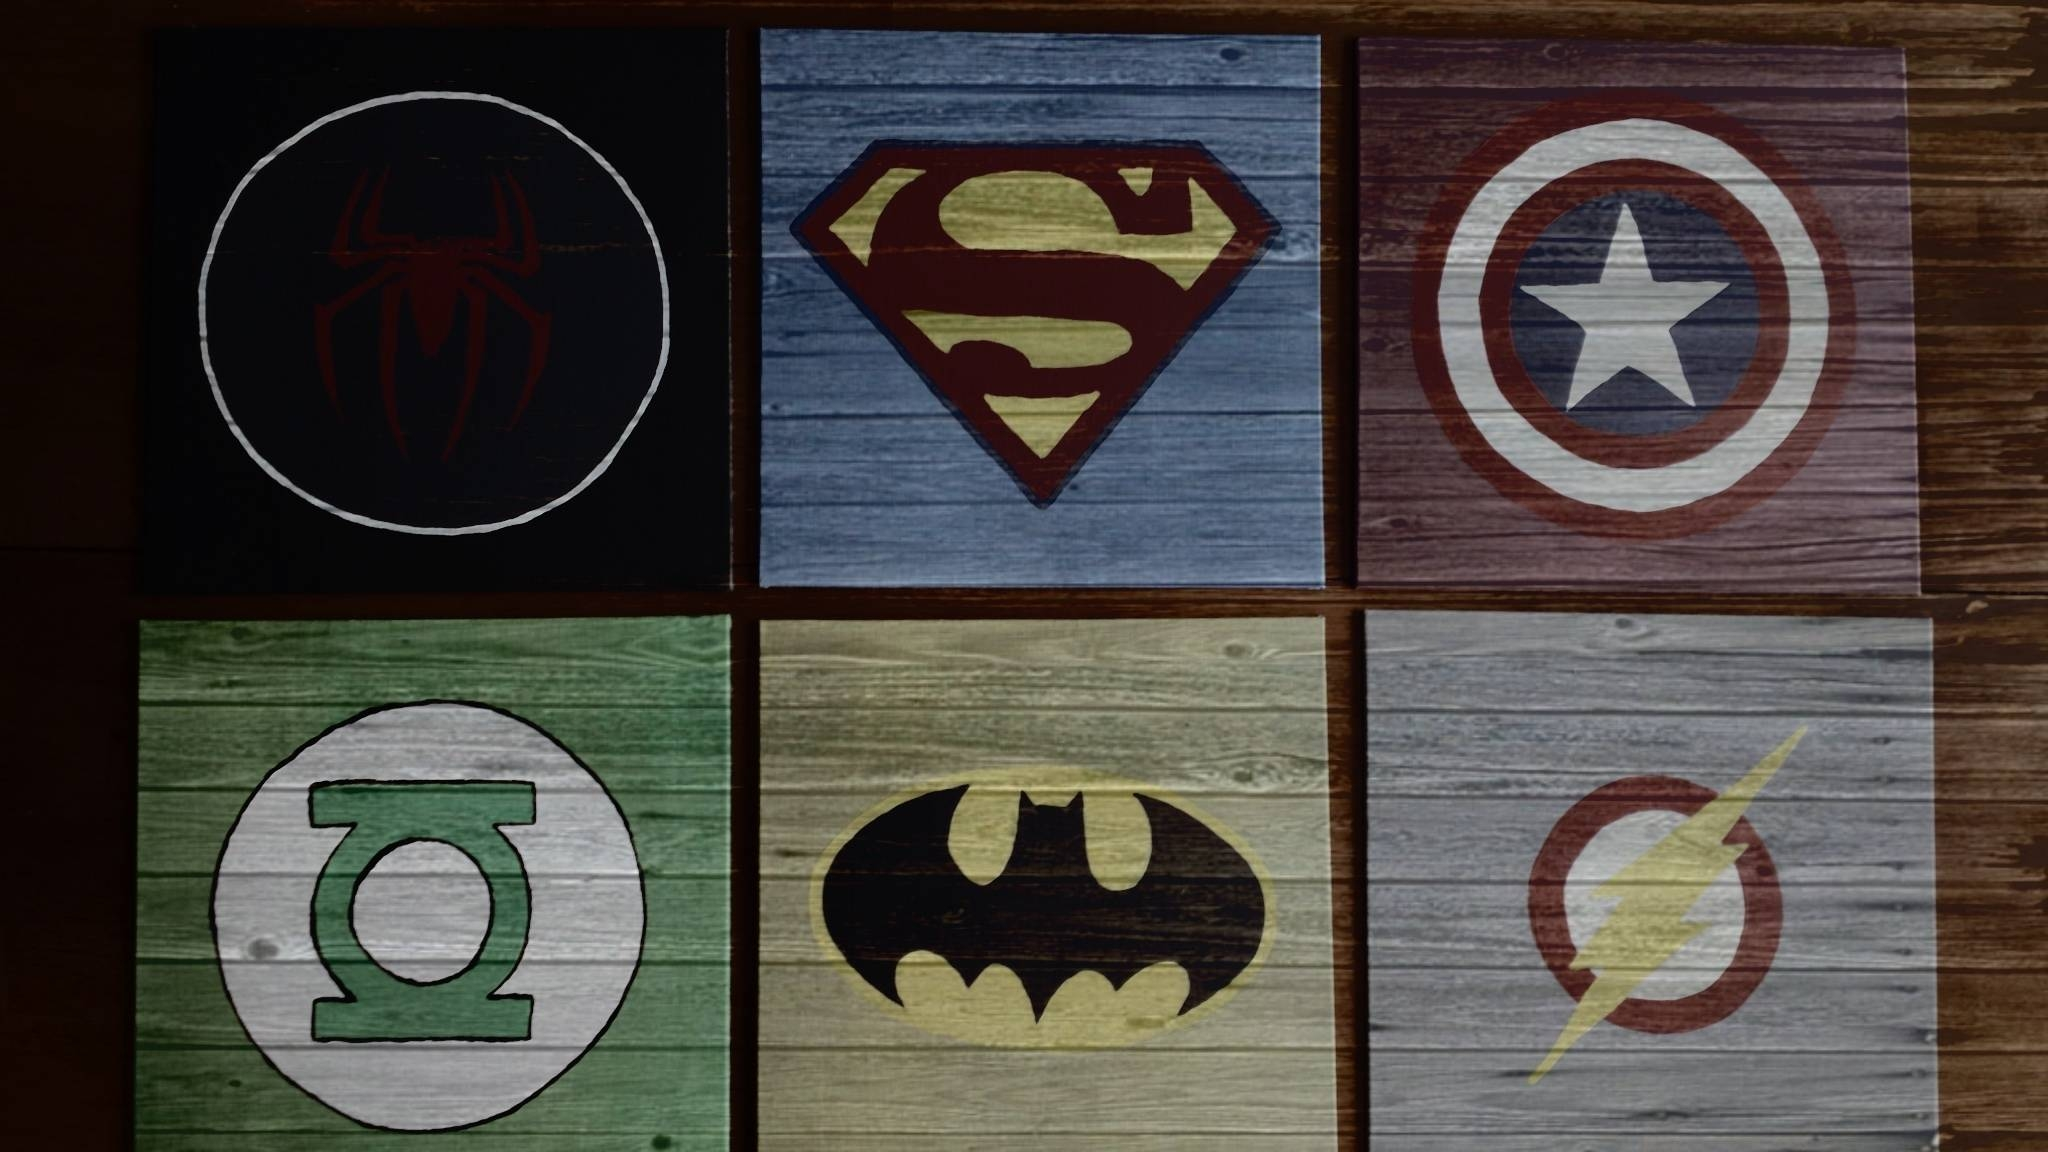 Diy Wall Art For Boys  Superhero Logos | Pinterest Inspiration With Most Up To Date Superhero Wall Art For Kids (View 5 of 25)